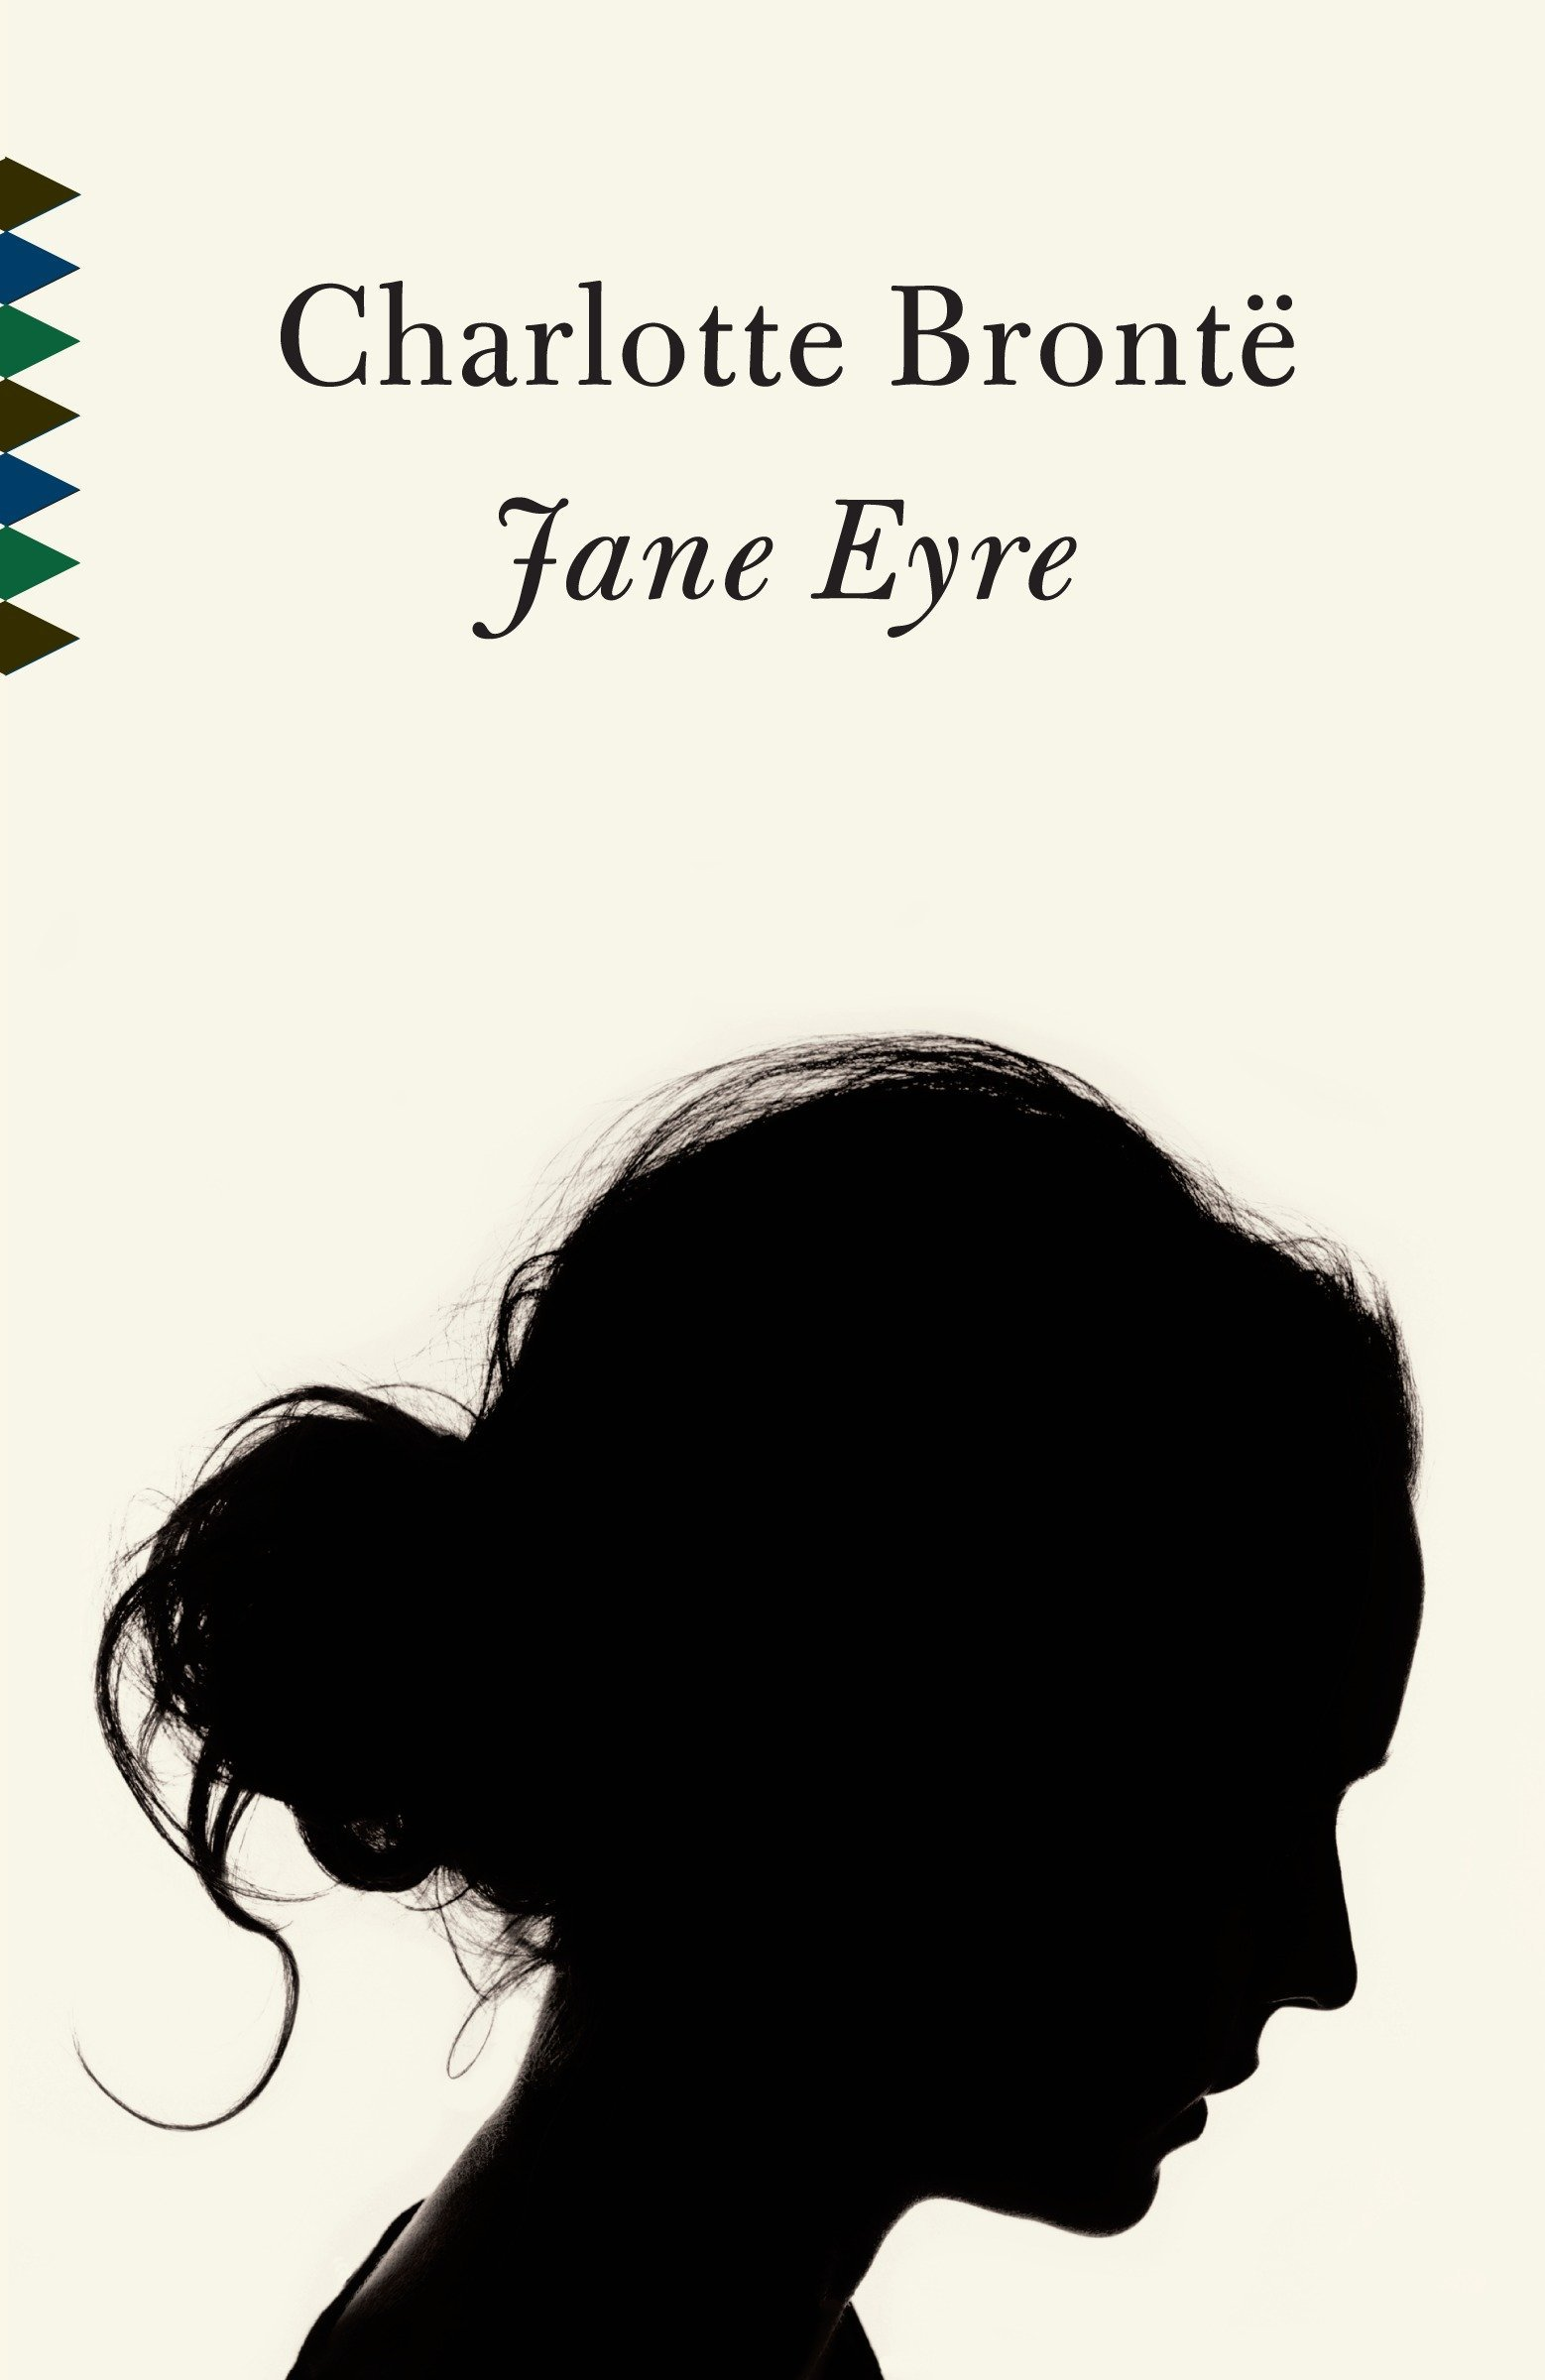 Jane Eyre (Vintage Classics) by Charlotte Brontë   Charlotte Brontë's most beloved novel describes the passionate love between the courageous orphan Jane Eyre and the brilliant, brooding, and domineering Rochester. The loneliness and cruelty of Jane's childhood strengthens her natural independence and spirit, which prove invaluable when she takes a position as a governess at Thornfield Hall. But after she falls in love with her sardonic employer, her discovery of his terrible secret forces her to make a heart-wrenching choice. Ever since its publication in 1847,  Jane Eyre    has enthralled every kind of reader, from the most critical and cultivated to the youngest and most unabashedly romantic. It lives as one of the great triumphs of storytelling and as a moving and unforgettable portrayal of a woman's quest for self-respect.